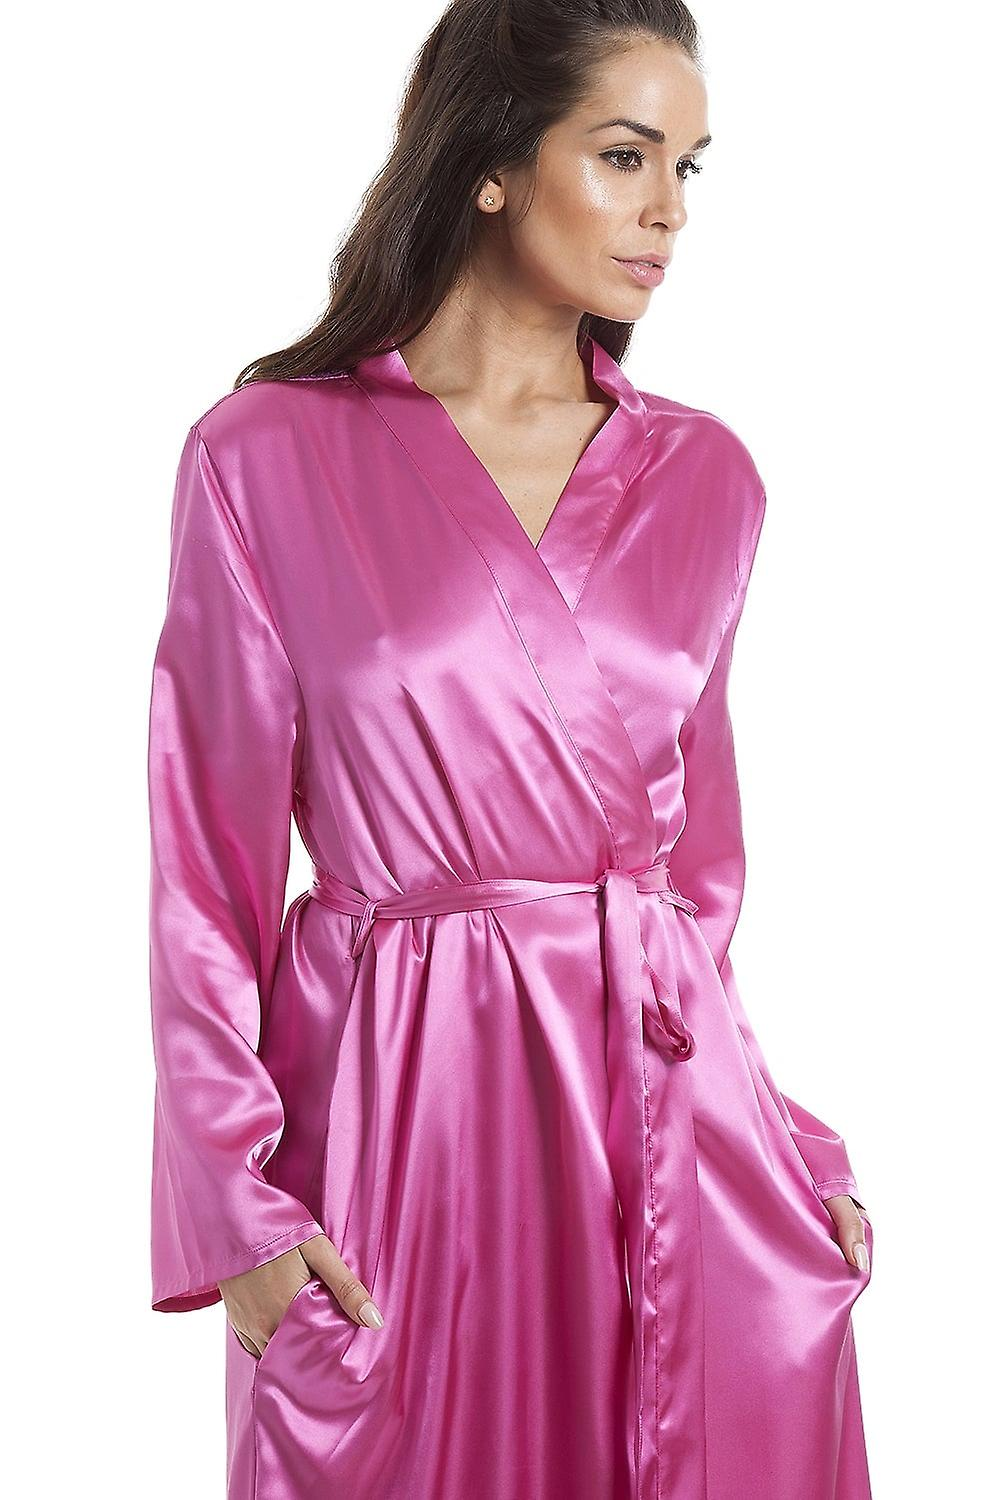 Camille Womens Pink Luxury Satin Dressing Gown | Fruugo